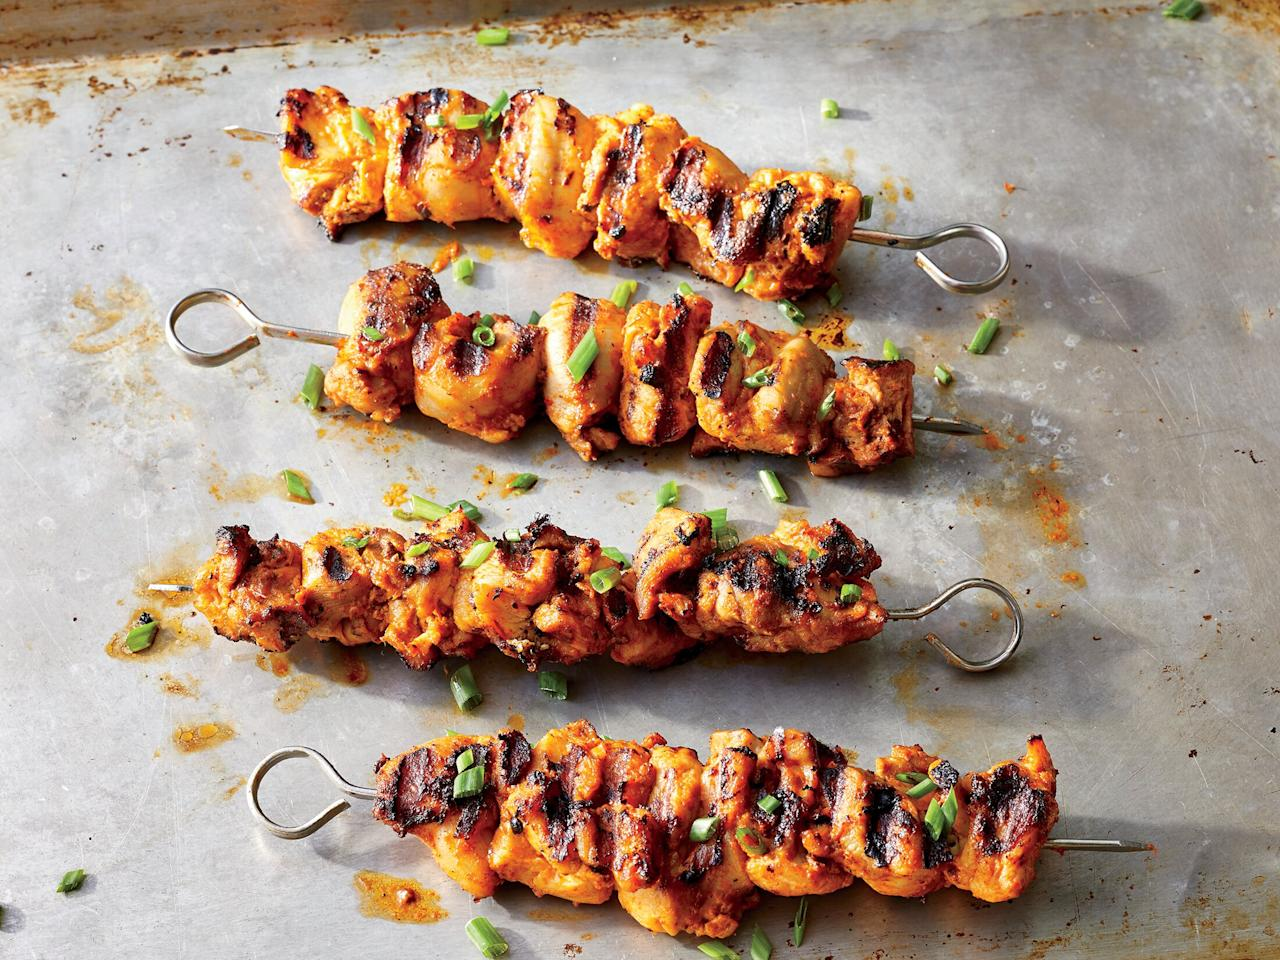 """<p>These skewers get a nice, long marinating time due to the low amount of lemon juice. If your marinade is loaded with vinegar or citrus, go for 30 minutes to an hour at most to ensure the best texture.</p> <p><a href=""""https://www.myrecipes.com/recipe/harissa-grilled-chicken-skewers"""">Harissa Grilled Chicken Skewers Recipe</a></p>"""